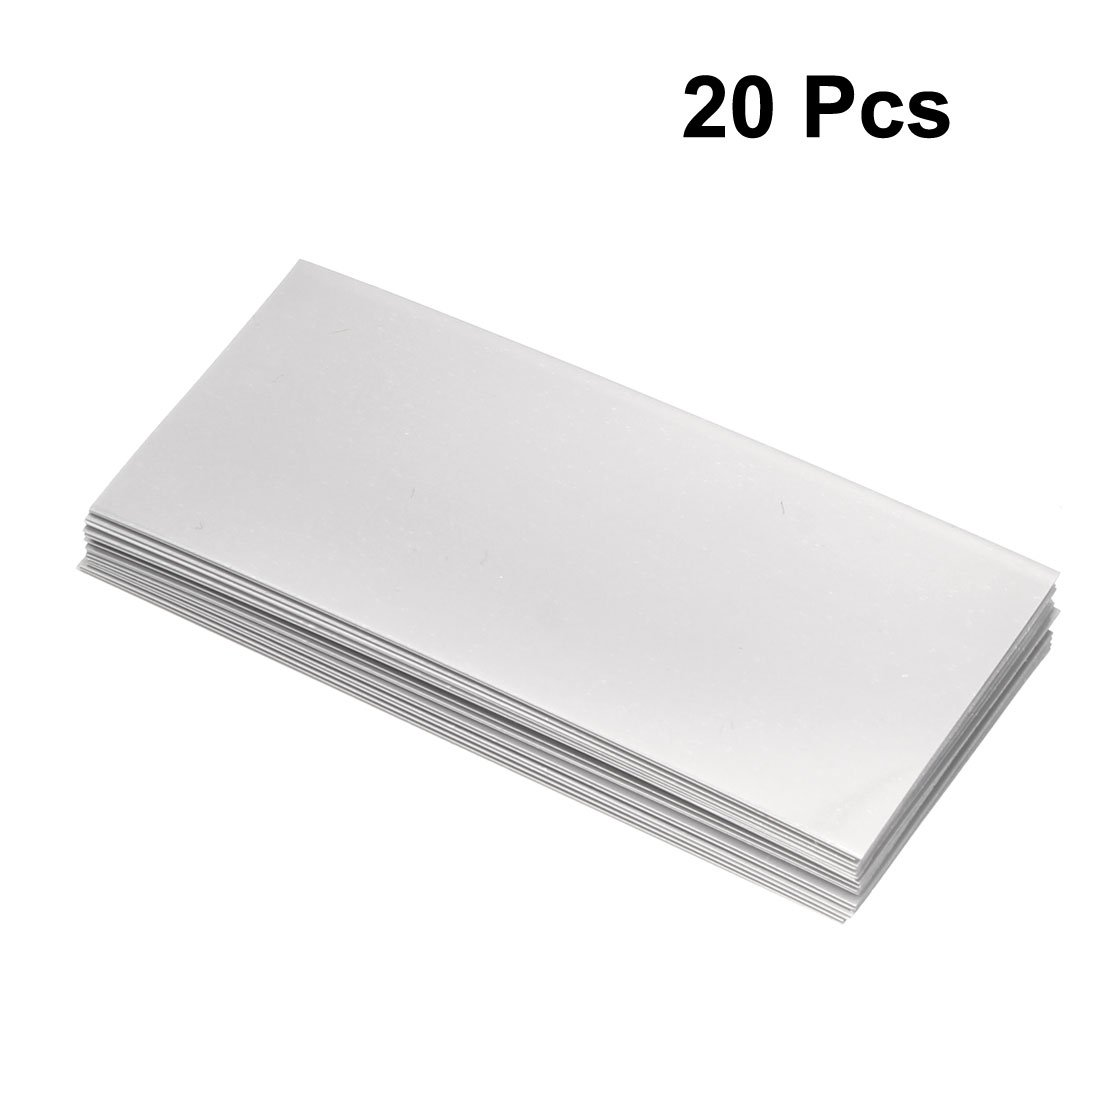 Pack of 20 a18051400ux0277 Gray uxcell PVC Heat Shrink Tubing 29.5mm Flat Width Pre Cut Heat Shrink Wrap Tube for 18650 72mm Length